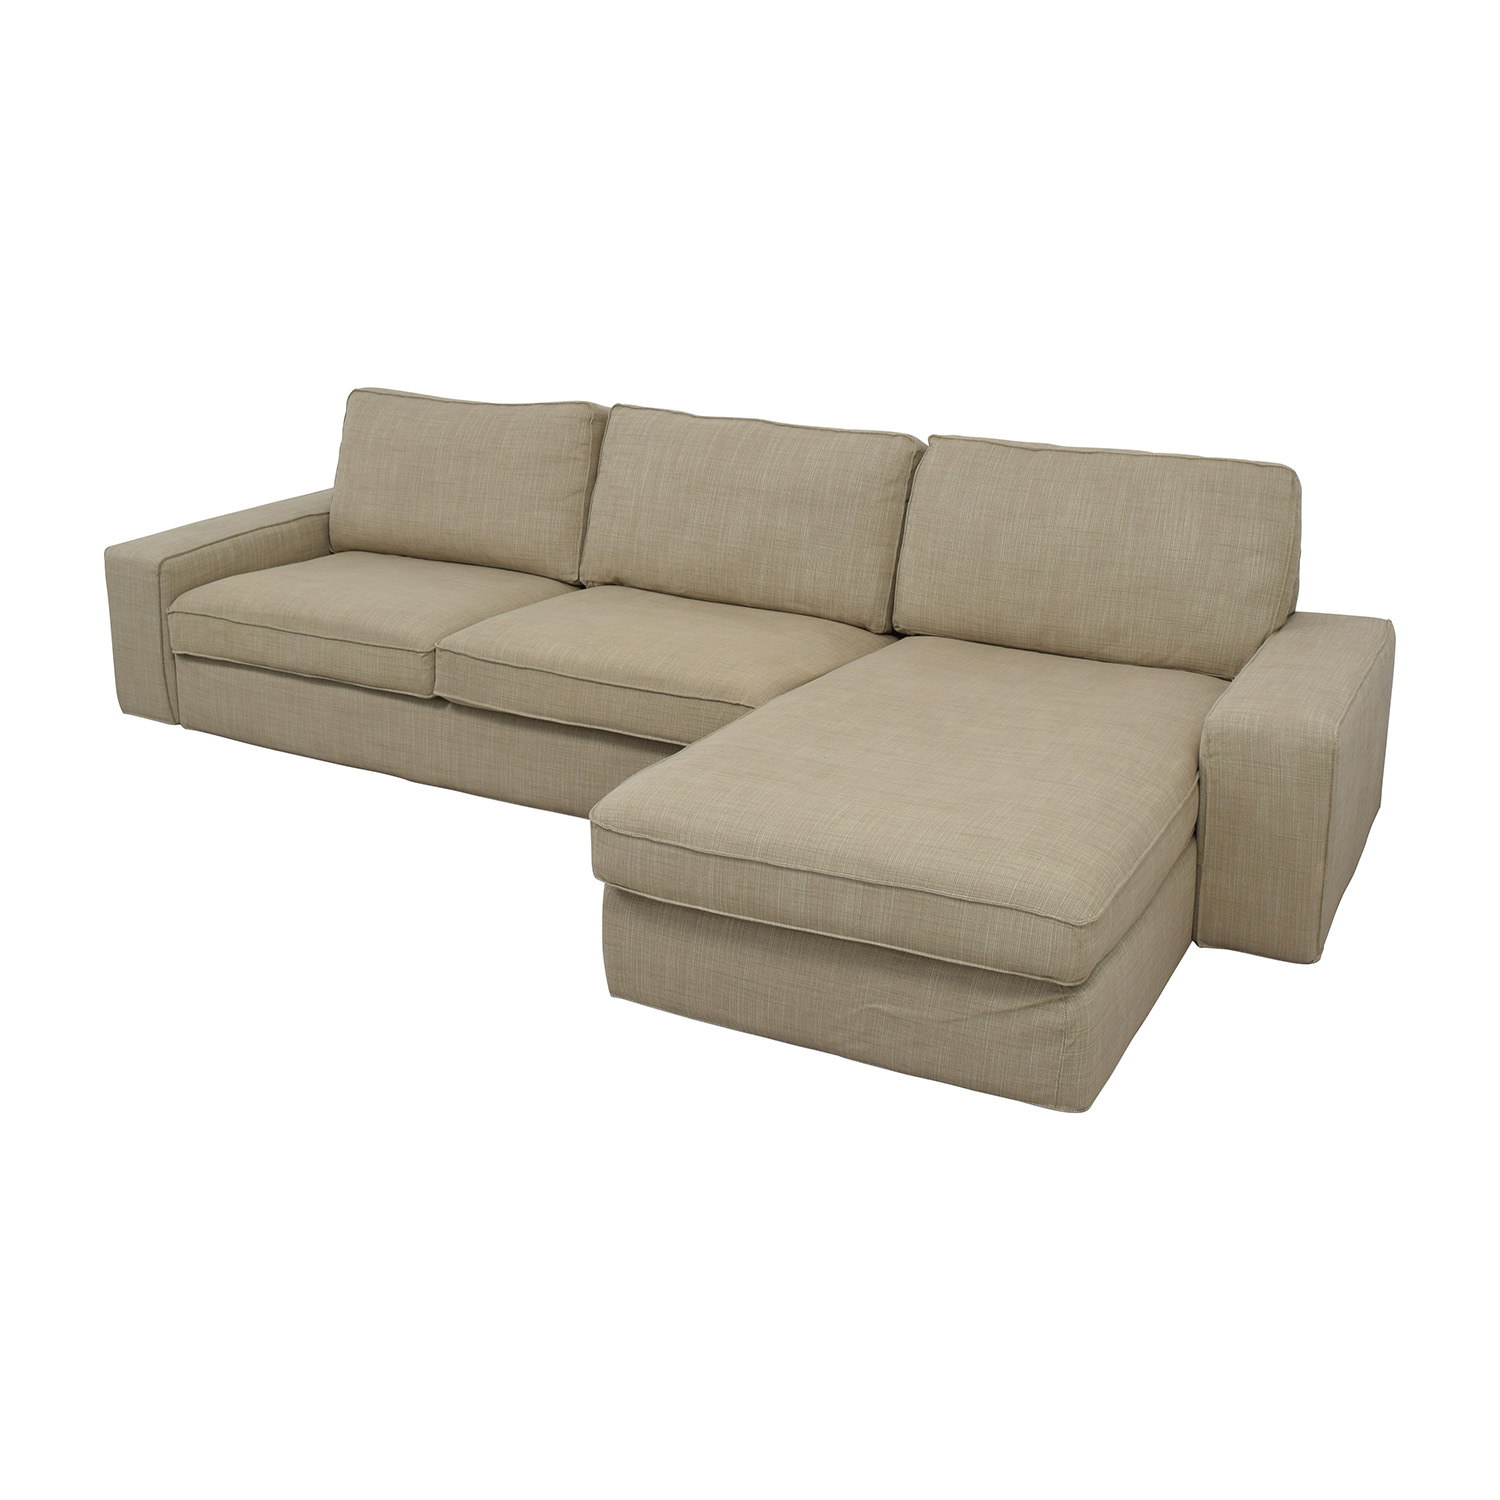 Ikea Bezüge Sofa 50 Off Ikea Ikea Kivik Sectional In Hillared Beige Sofas